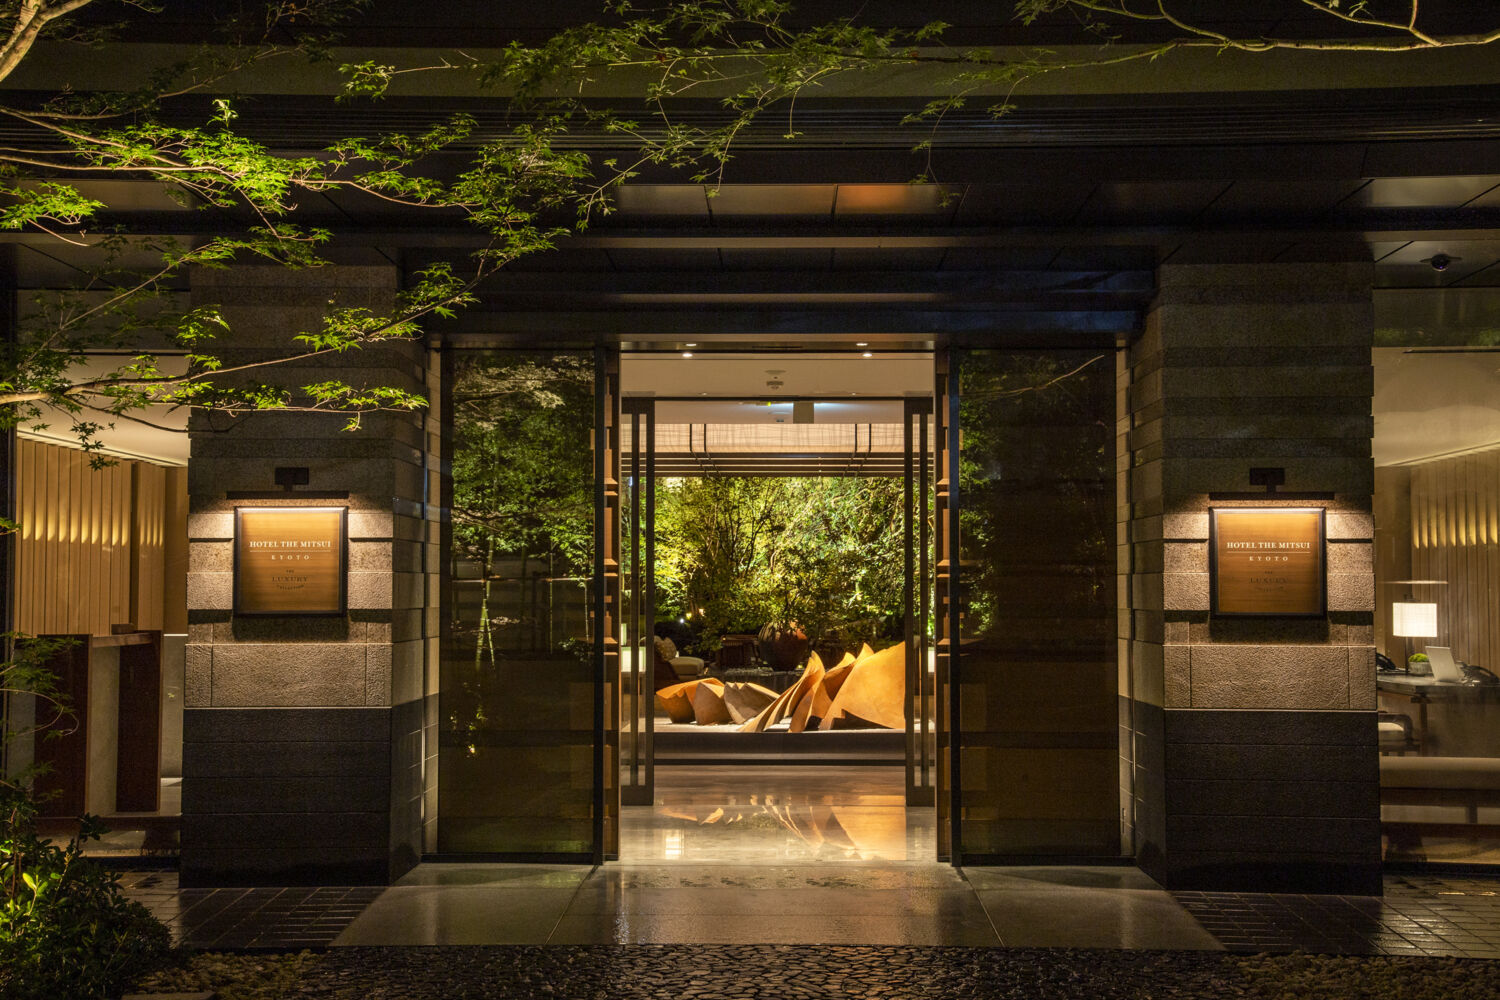 Hotel The Mitsui Kyoto, A Luxury Collection Hotel